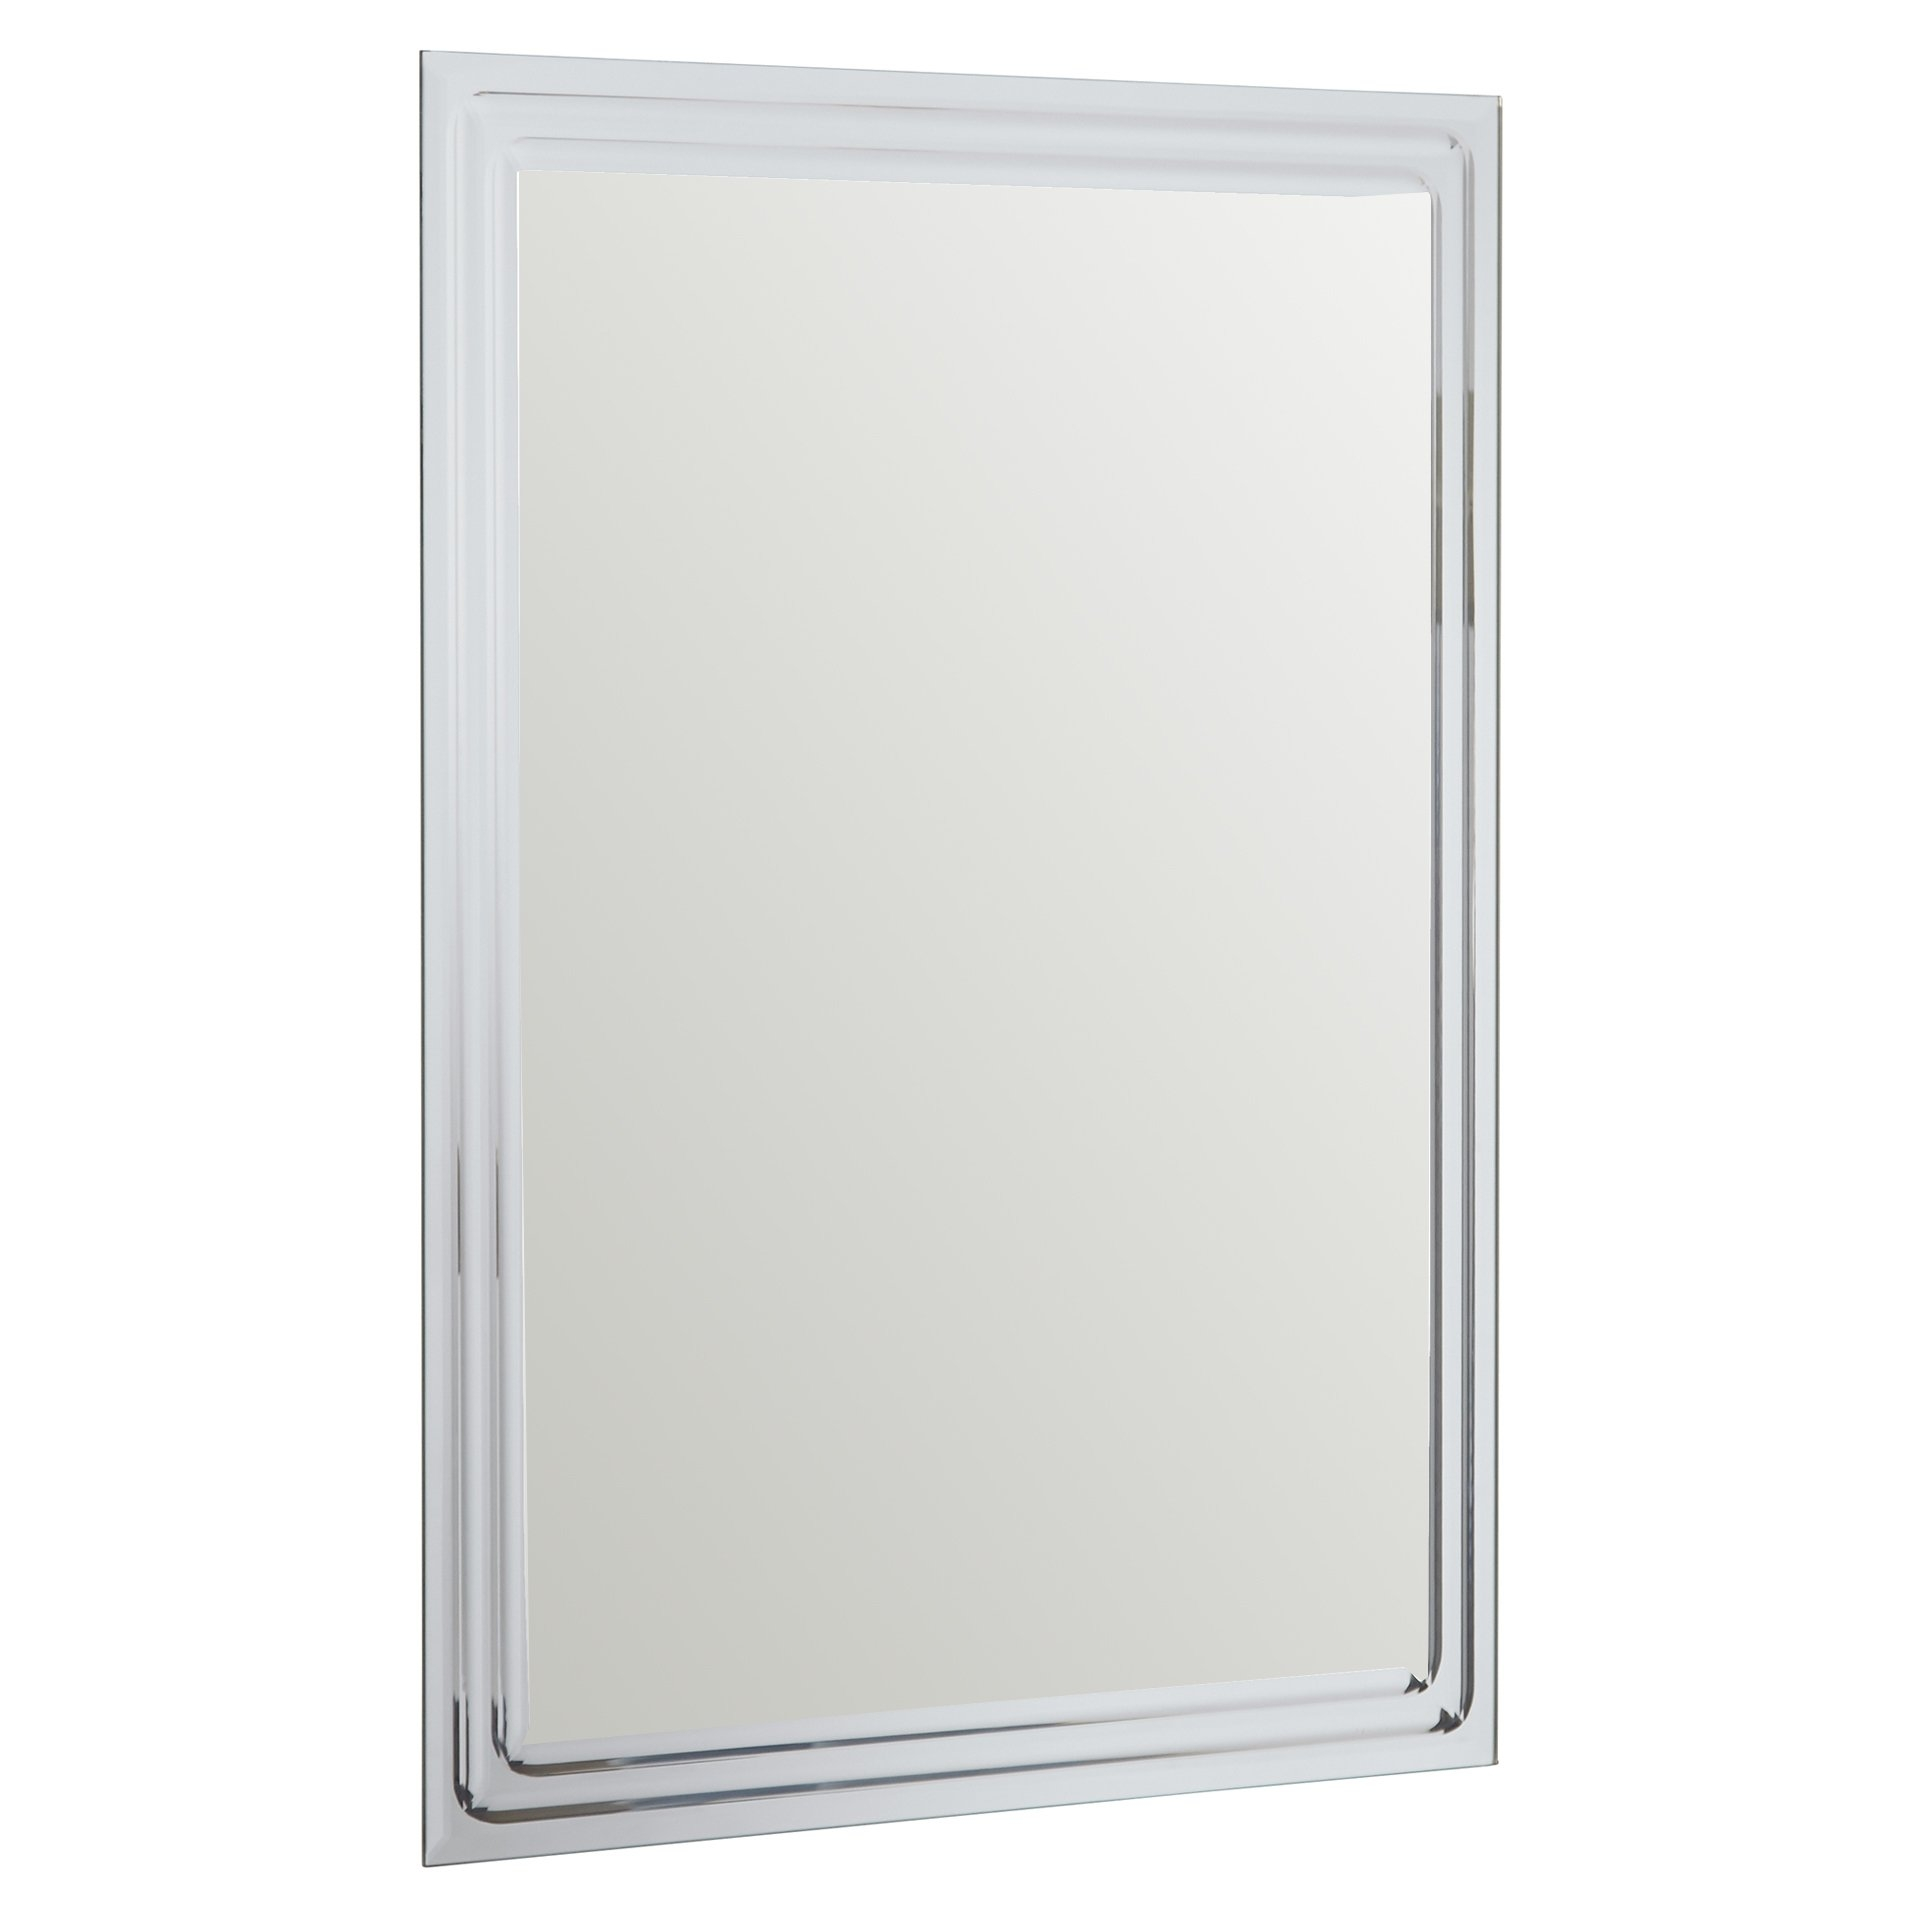 Brayden Studio Frameless Tri Bevel Wall Mirror Reviews Wayfair Within Bevelled Wall Mirror (Image 5 of 15)